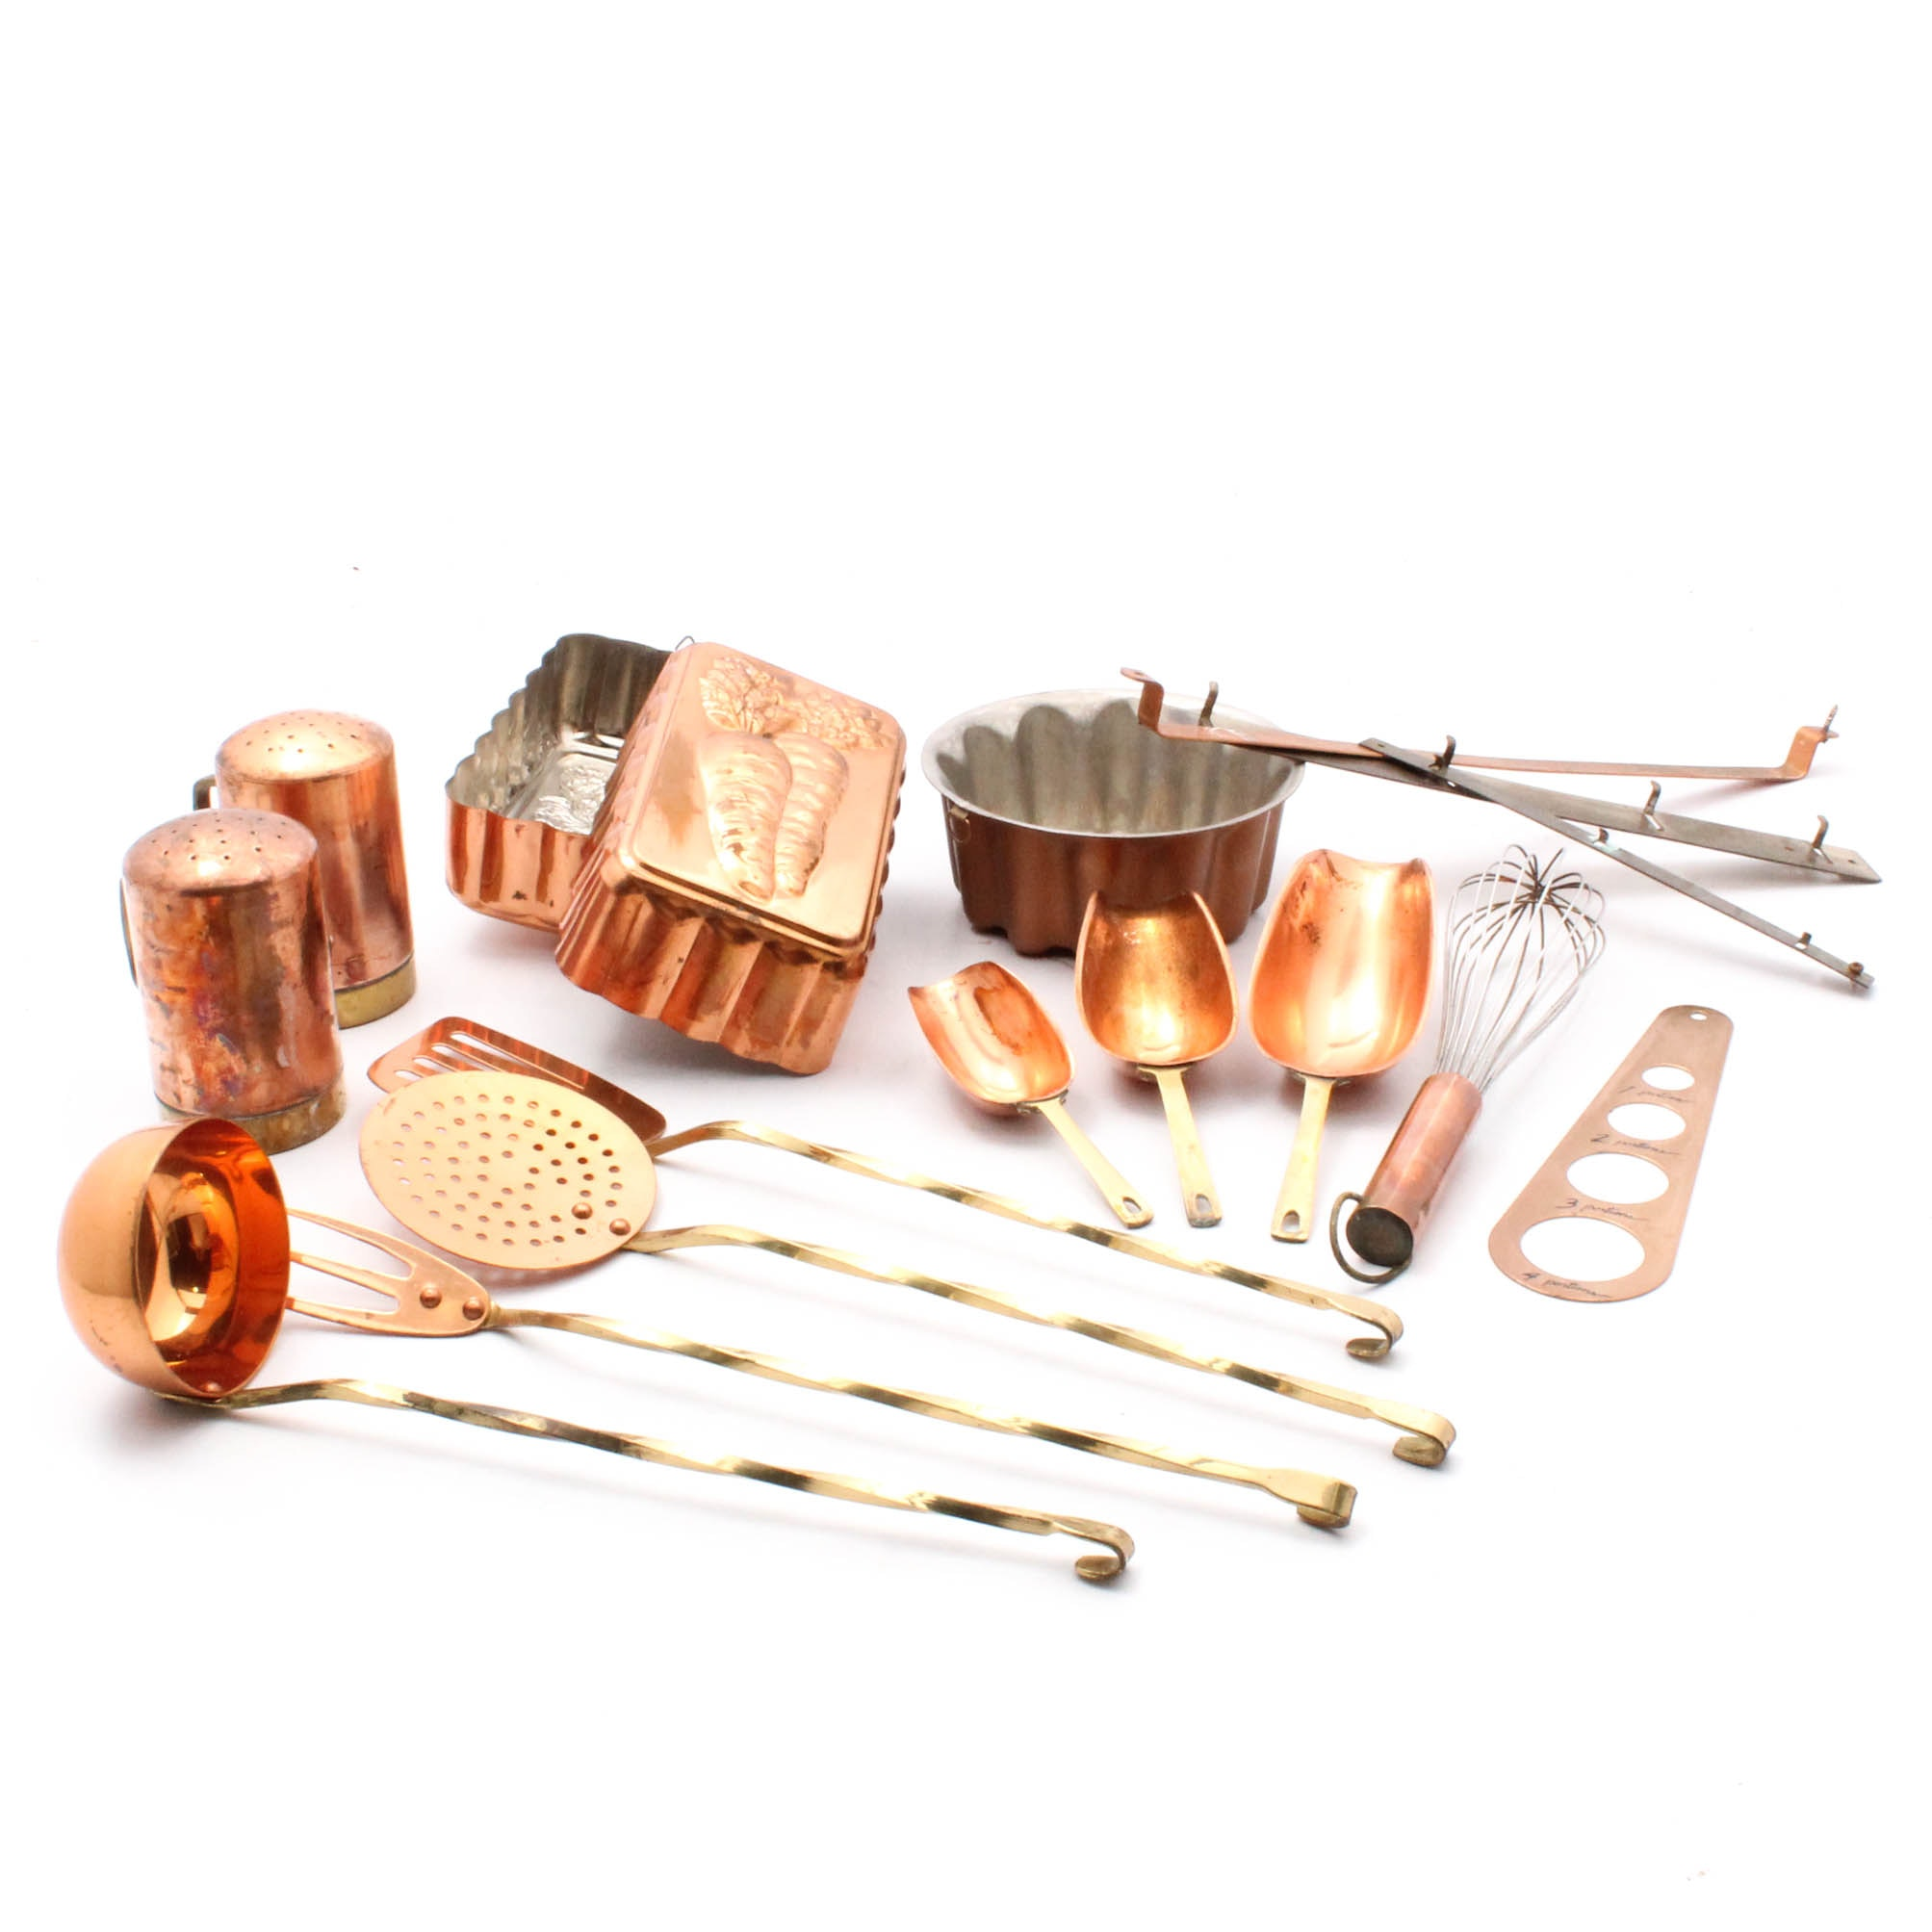 Copper Kitchenware Selection